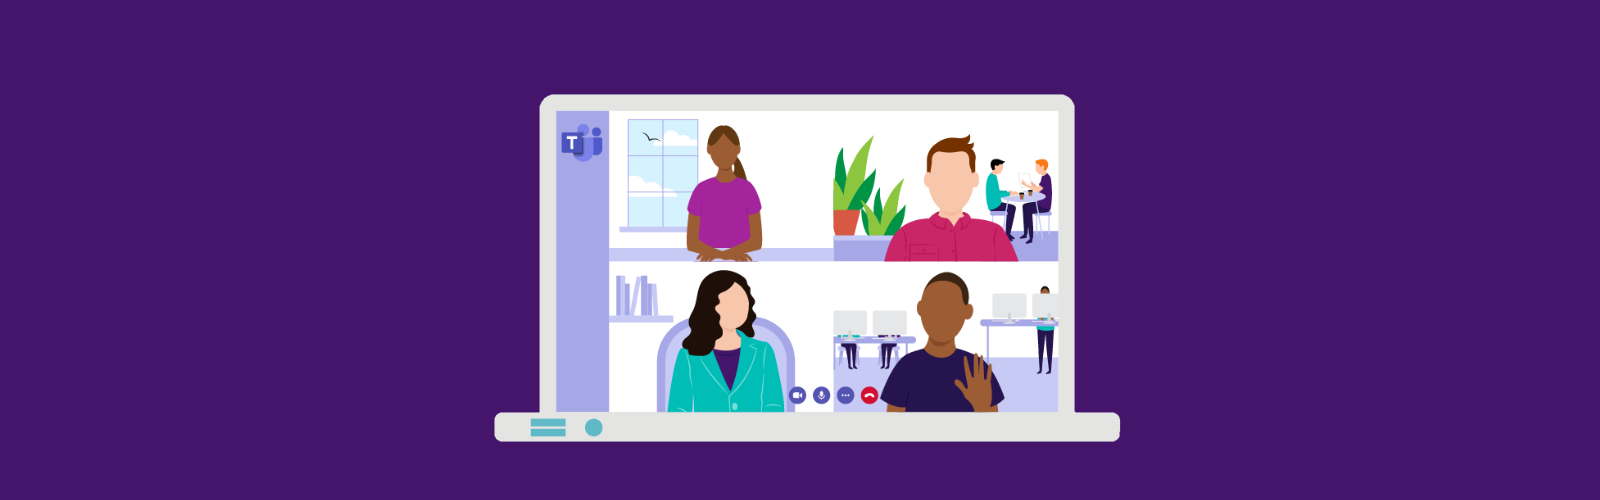 decorative Microsoft Teams banner image